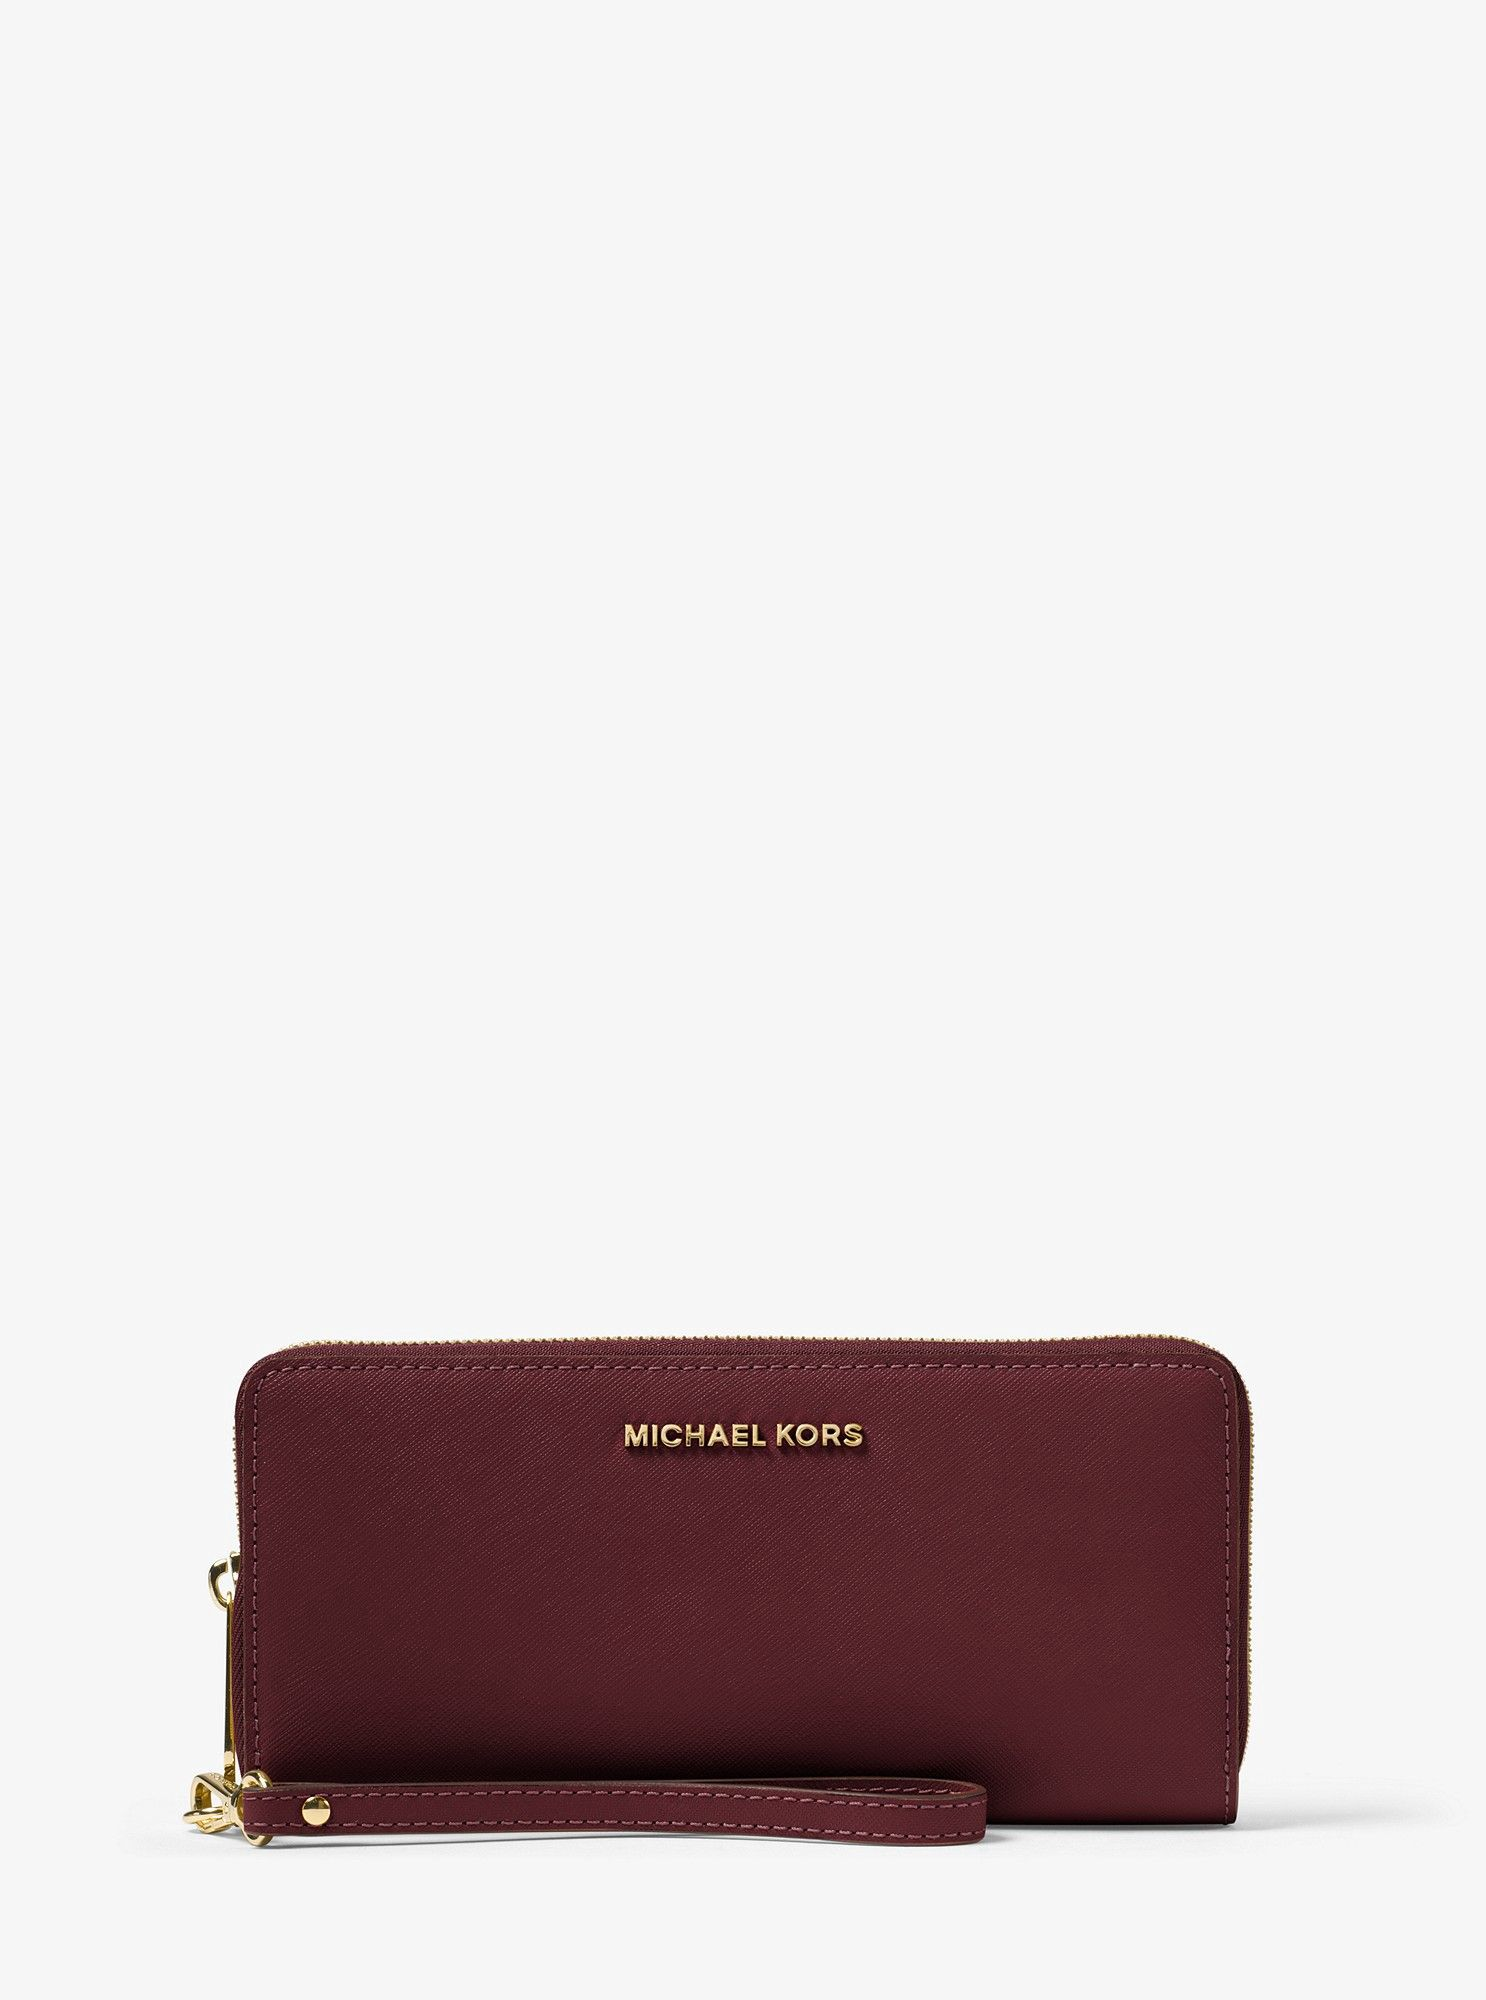 58324a102cf1 Michael Kors Jet Set Travel Leather Continental Wristlet - Admiral ...